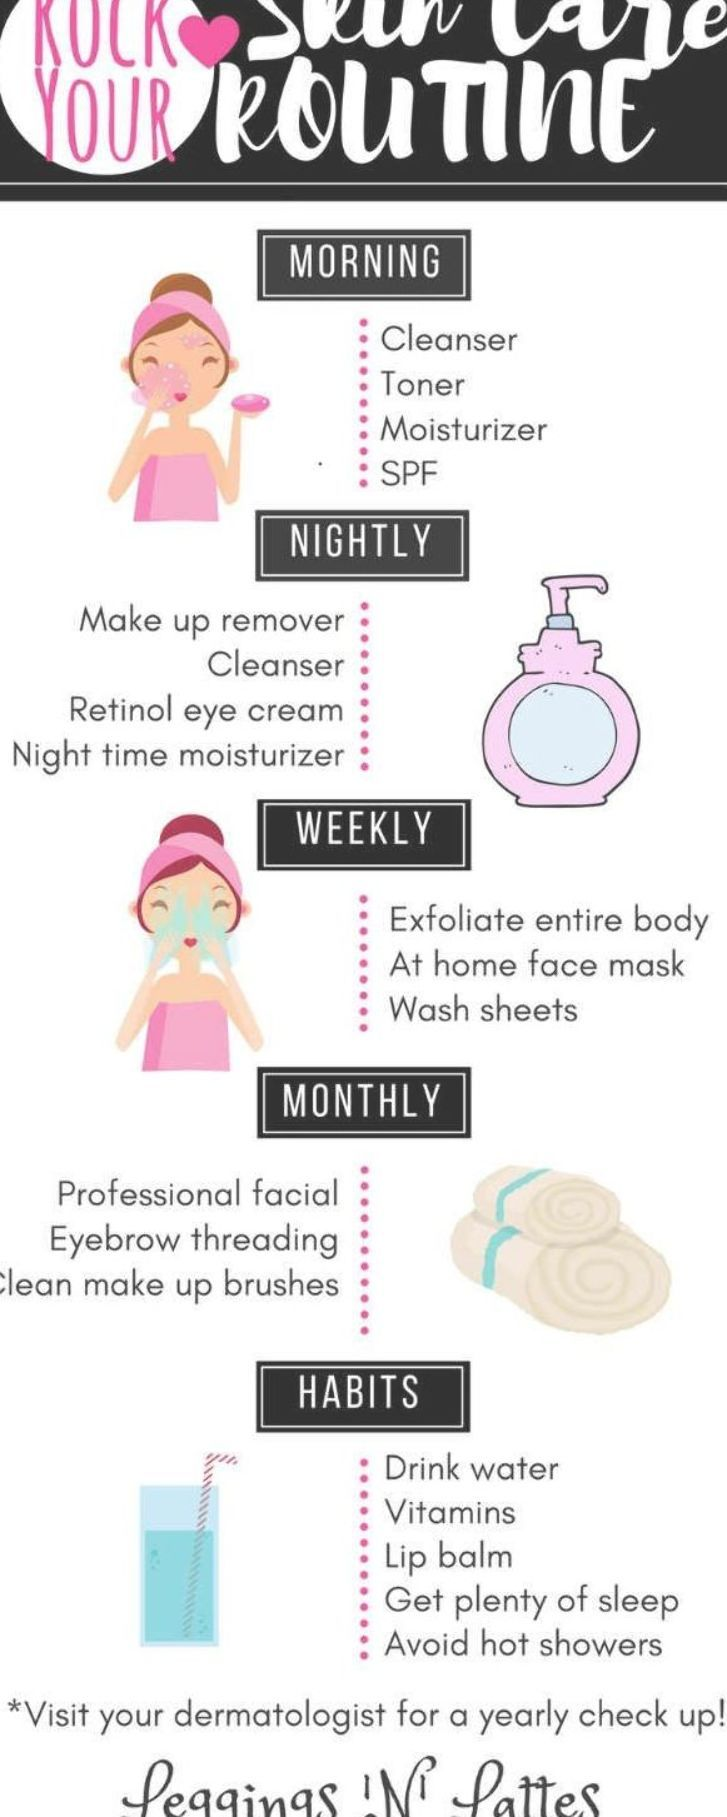 Follow A Skin Care Routine Mother S Day Beauty Tips For Women Around The World Skin Care Skin Care Routine Anti Aging Skin Products